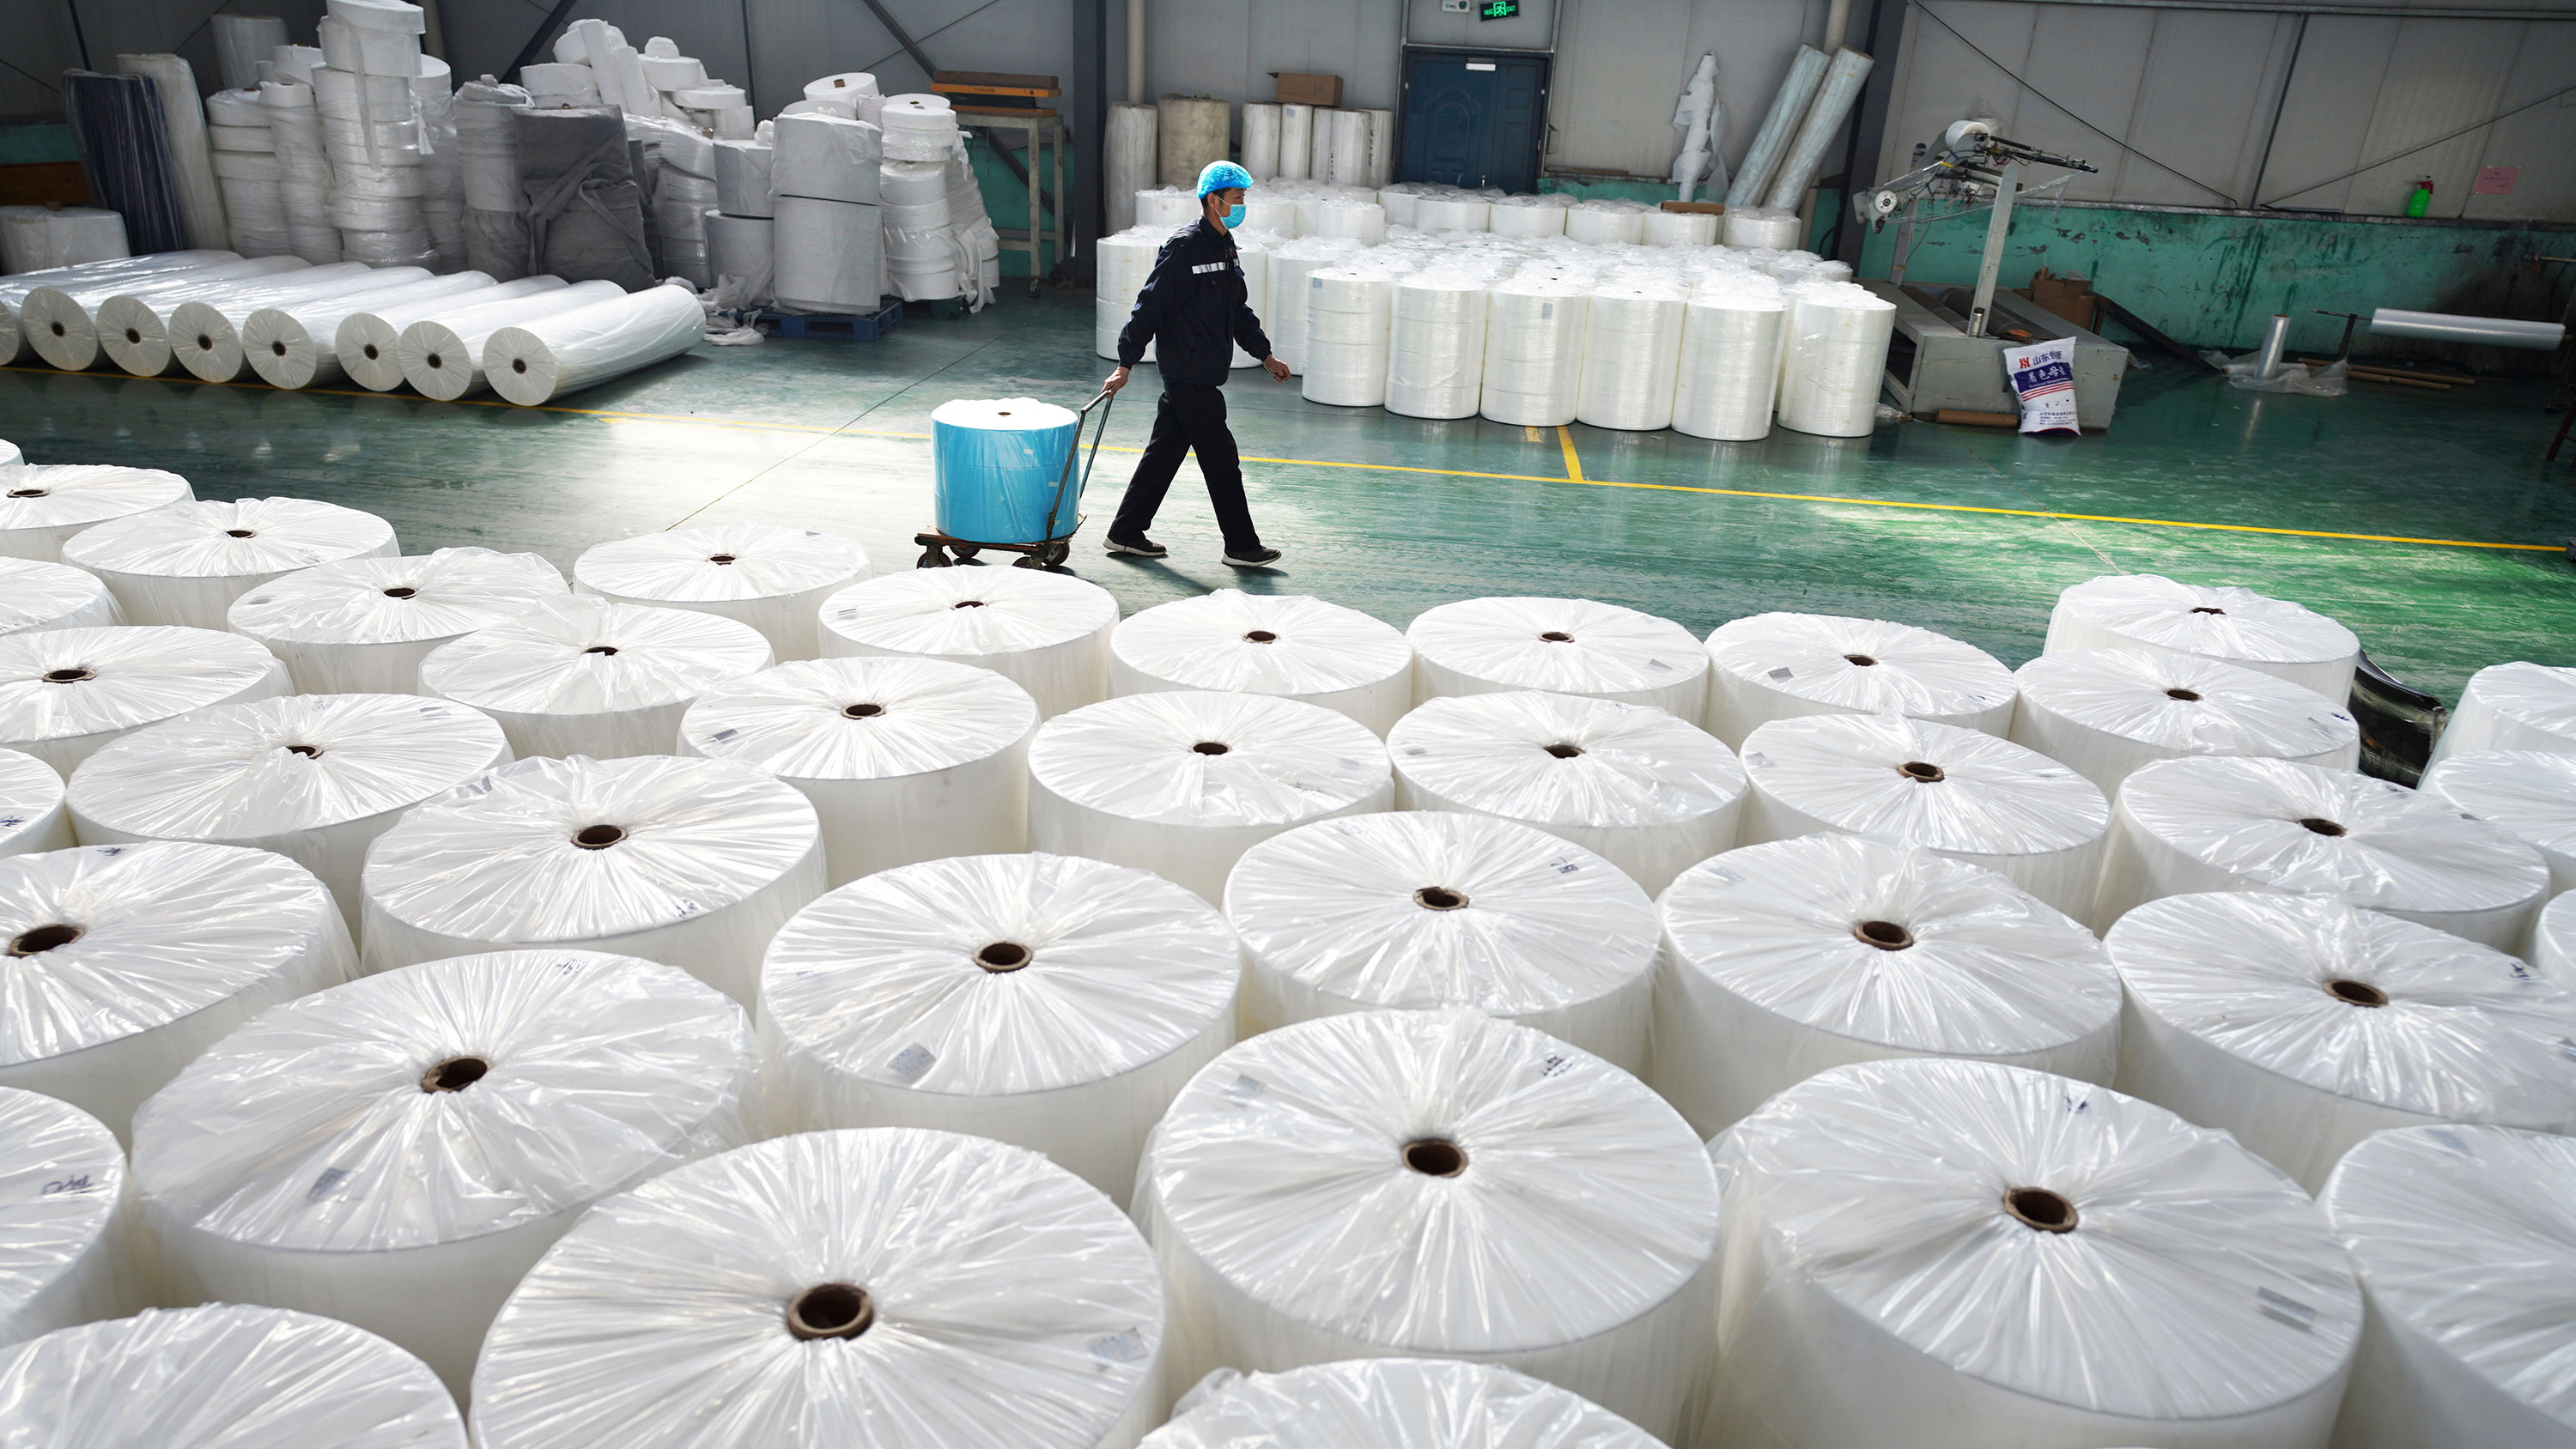 Picture shows a large factory space with a massive stack of large fabric spools in the foreground and a single worker walking by in the background.